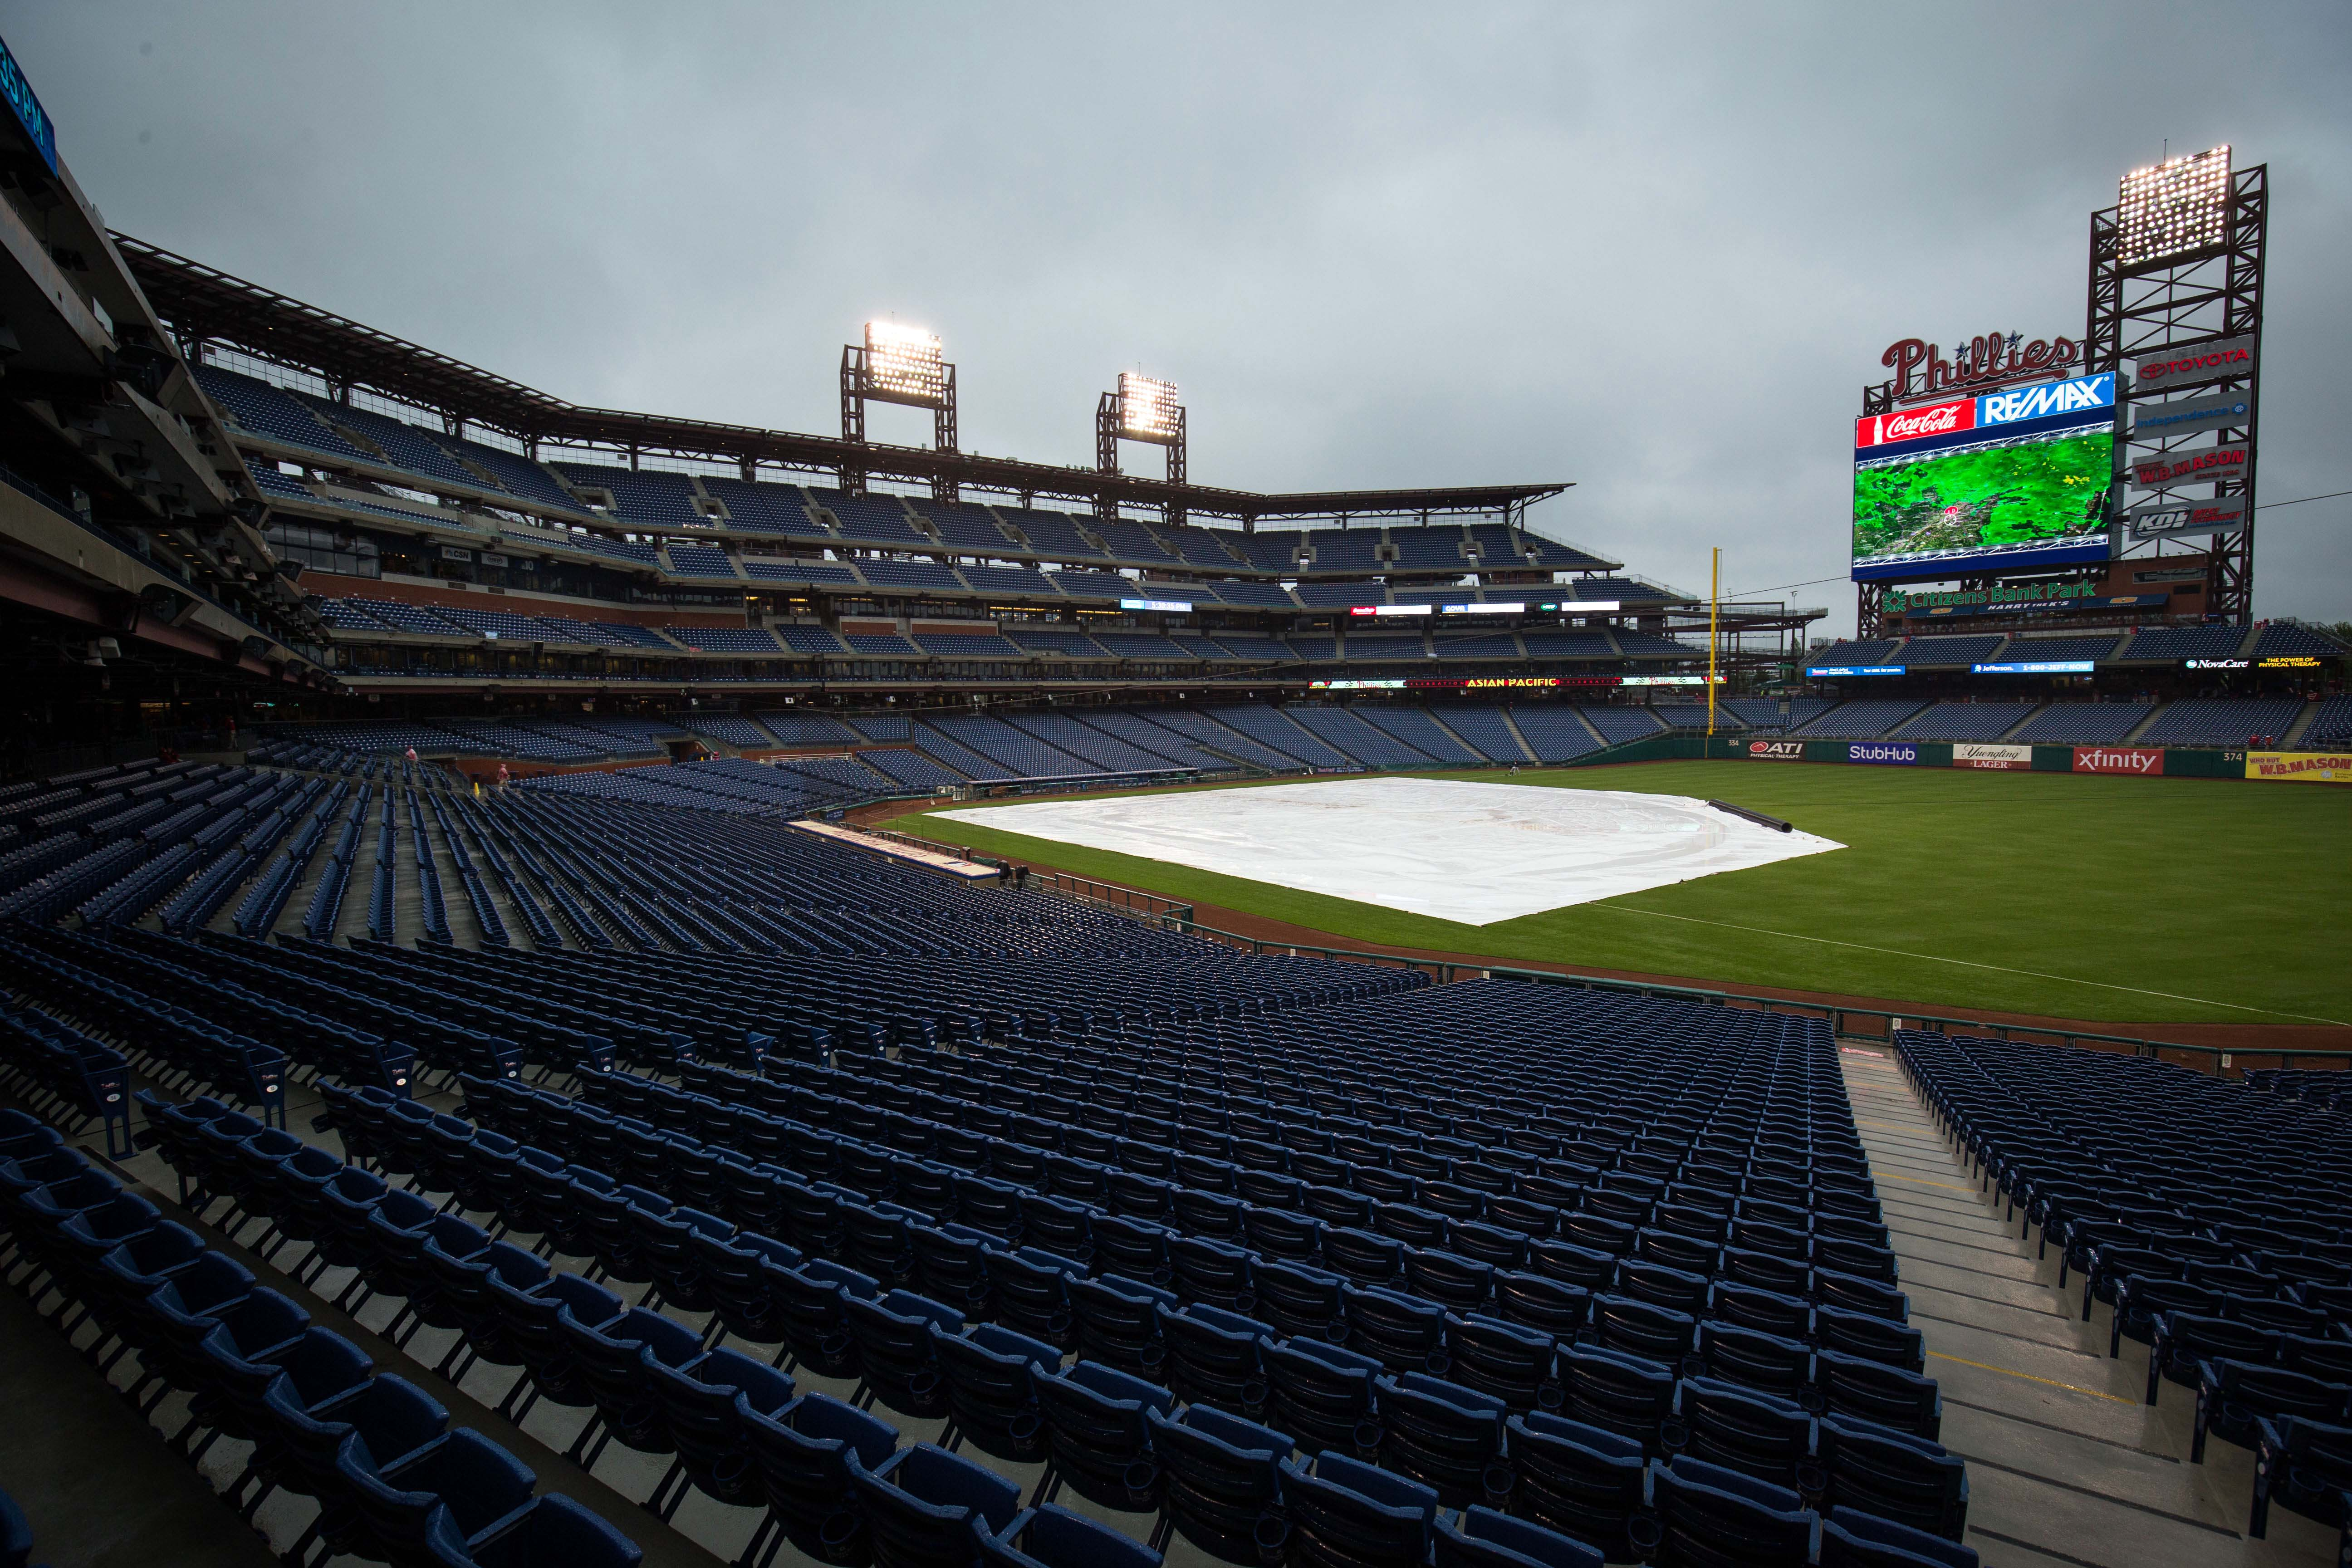 10030850-mlb-miami-marlins-at-philadelphia-phillies